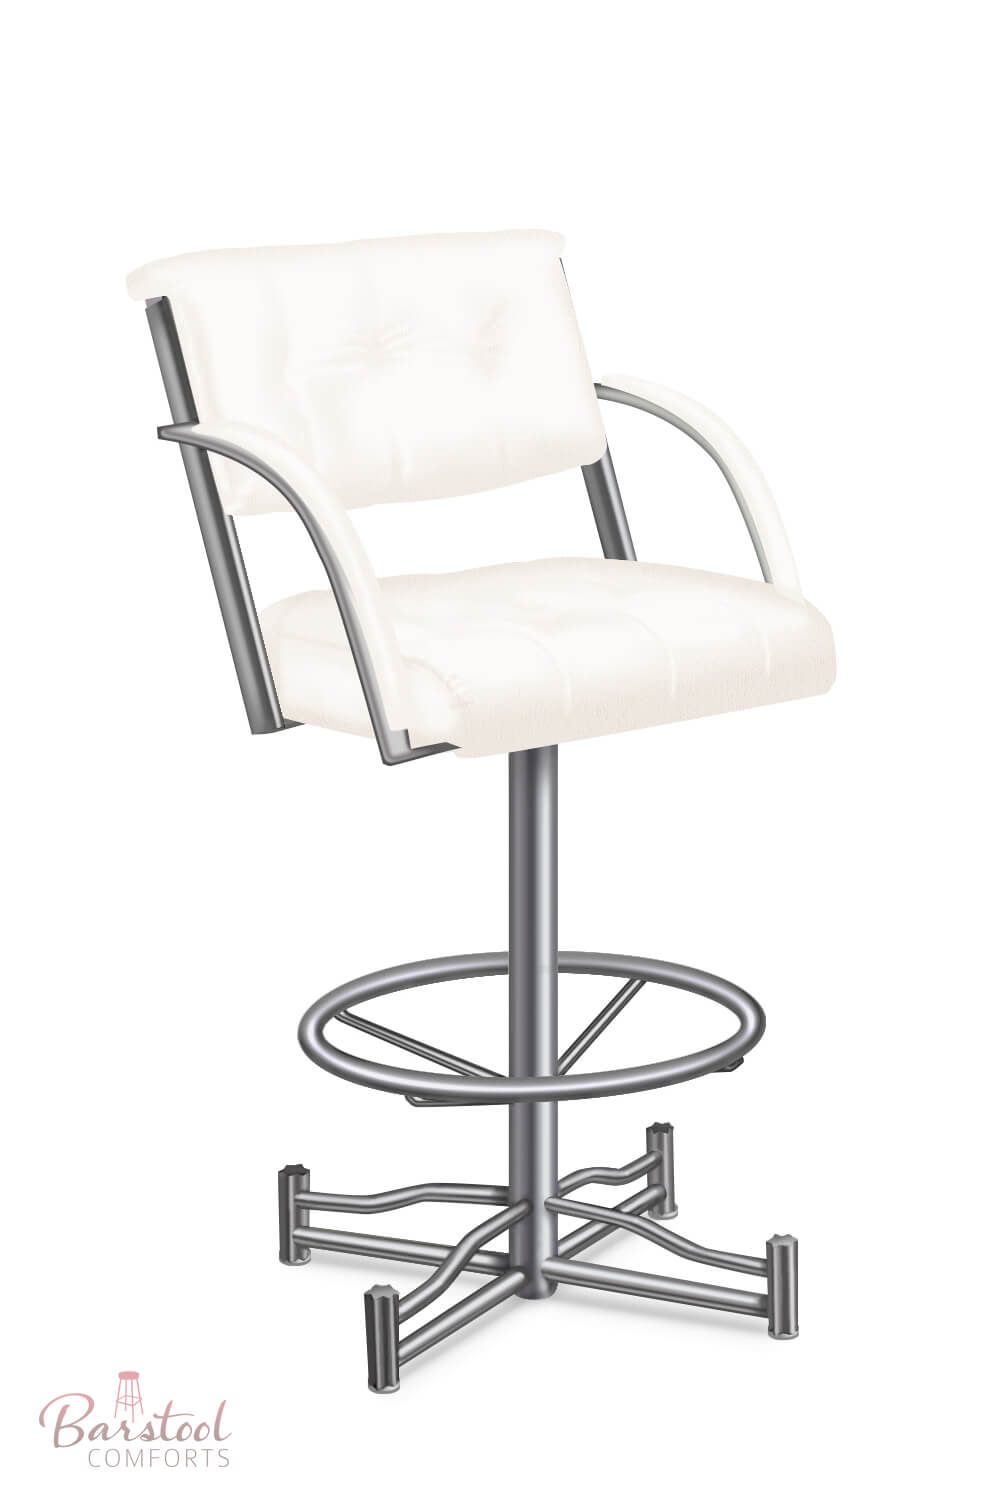 Laze Modern Tufted Upholstered Swivel Stool W Back Arms